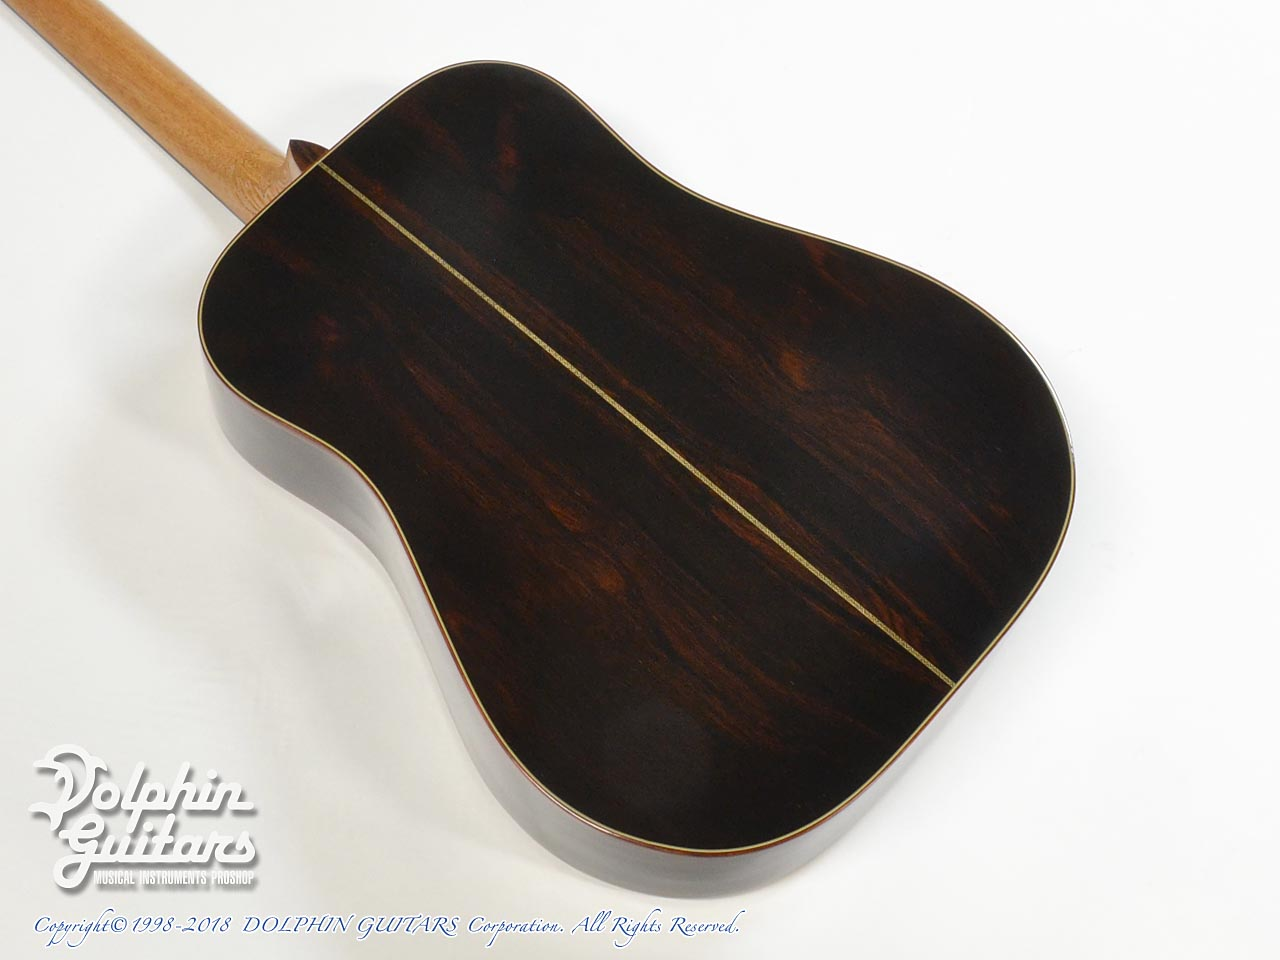 GREVEN: The Oshio D (Brazilian Rosewood) (3)